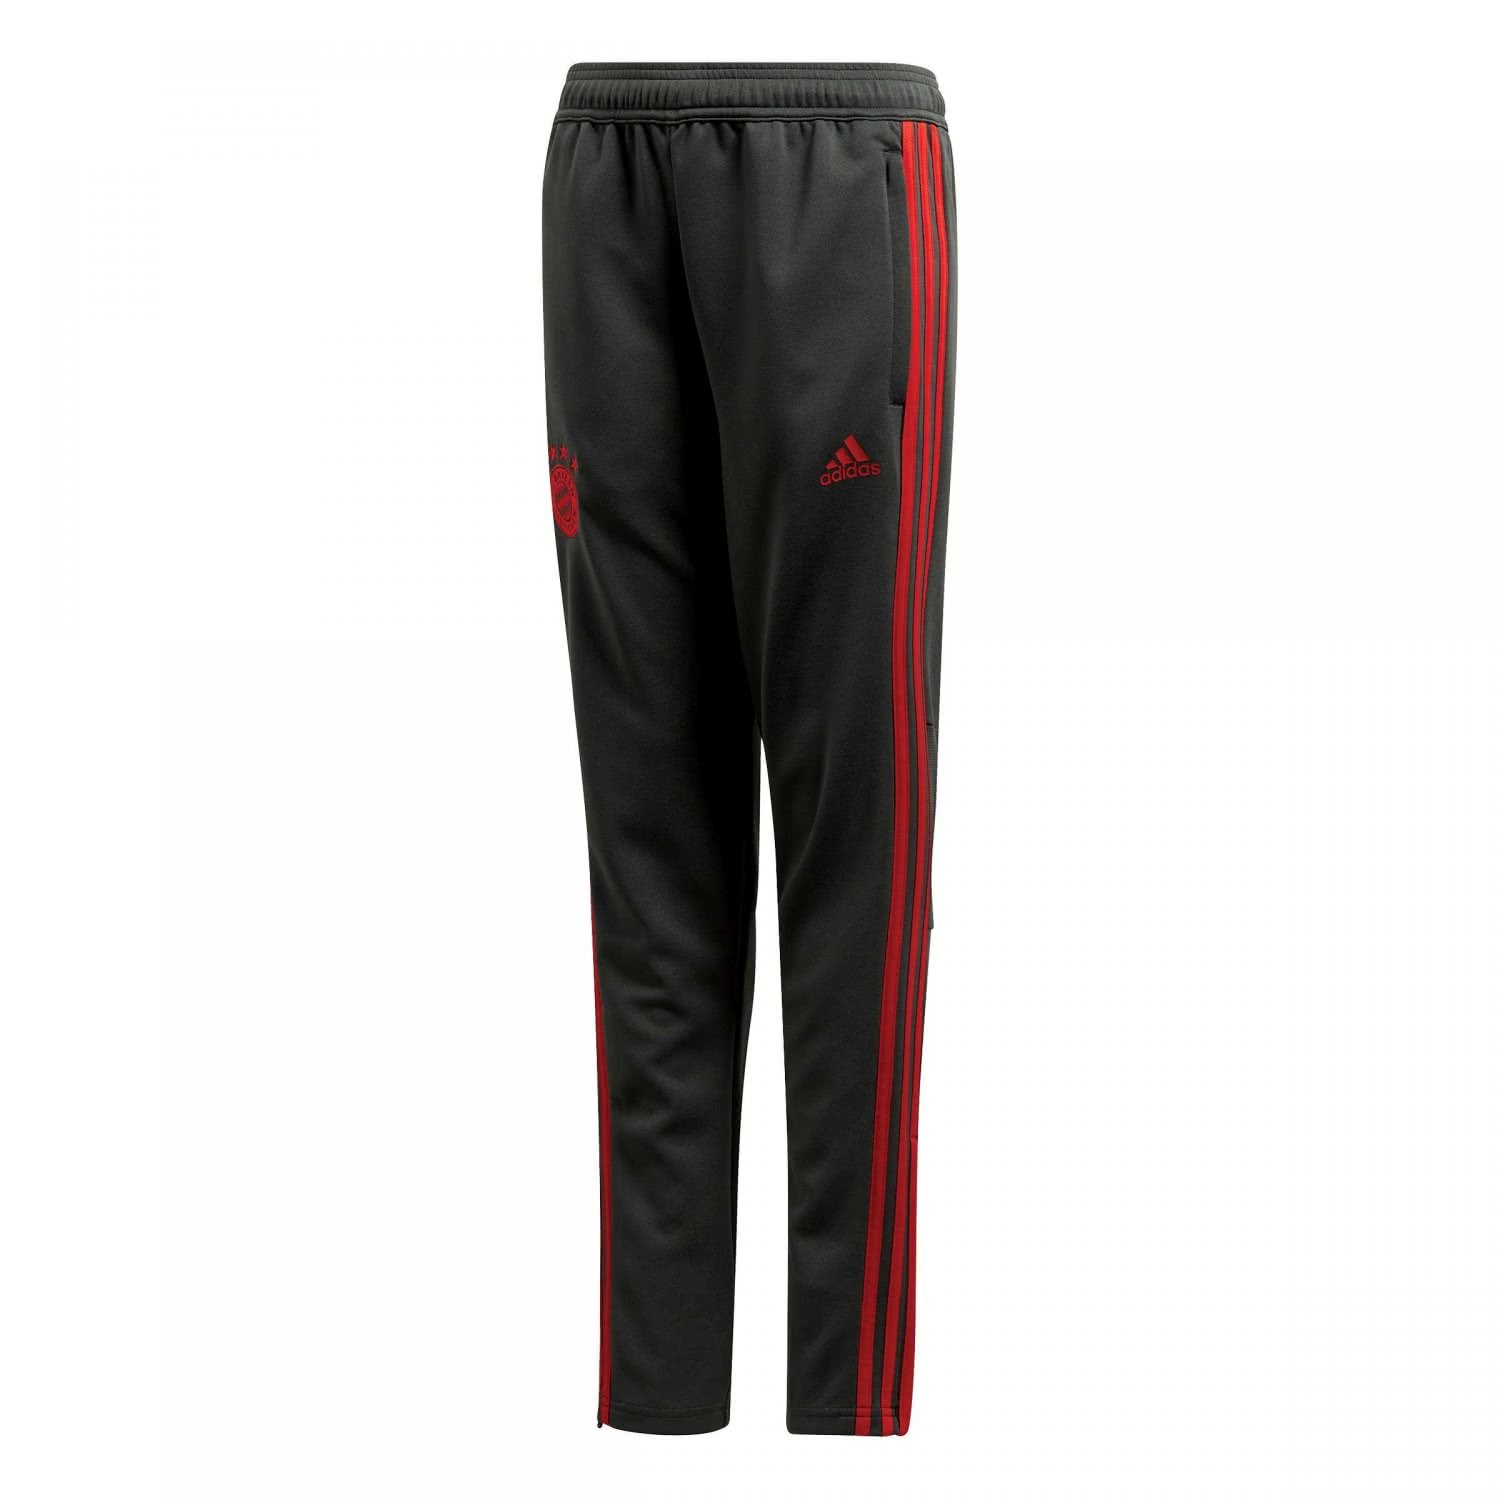 adidas 2018-2019 Bayern Munich Training Pants (Dark Grey) - Kids CW7293